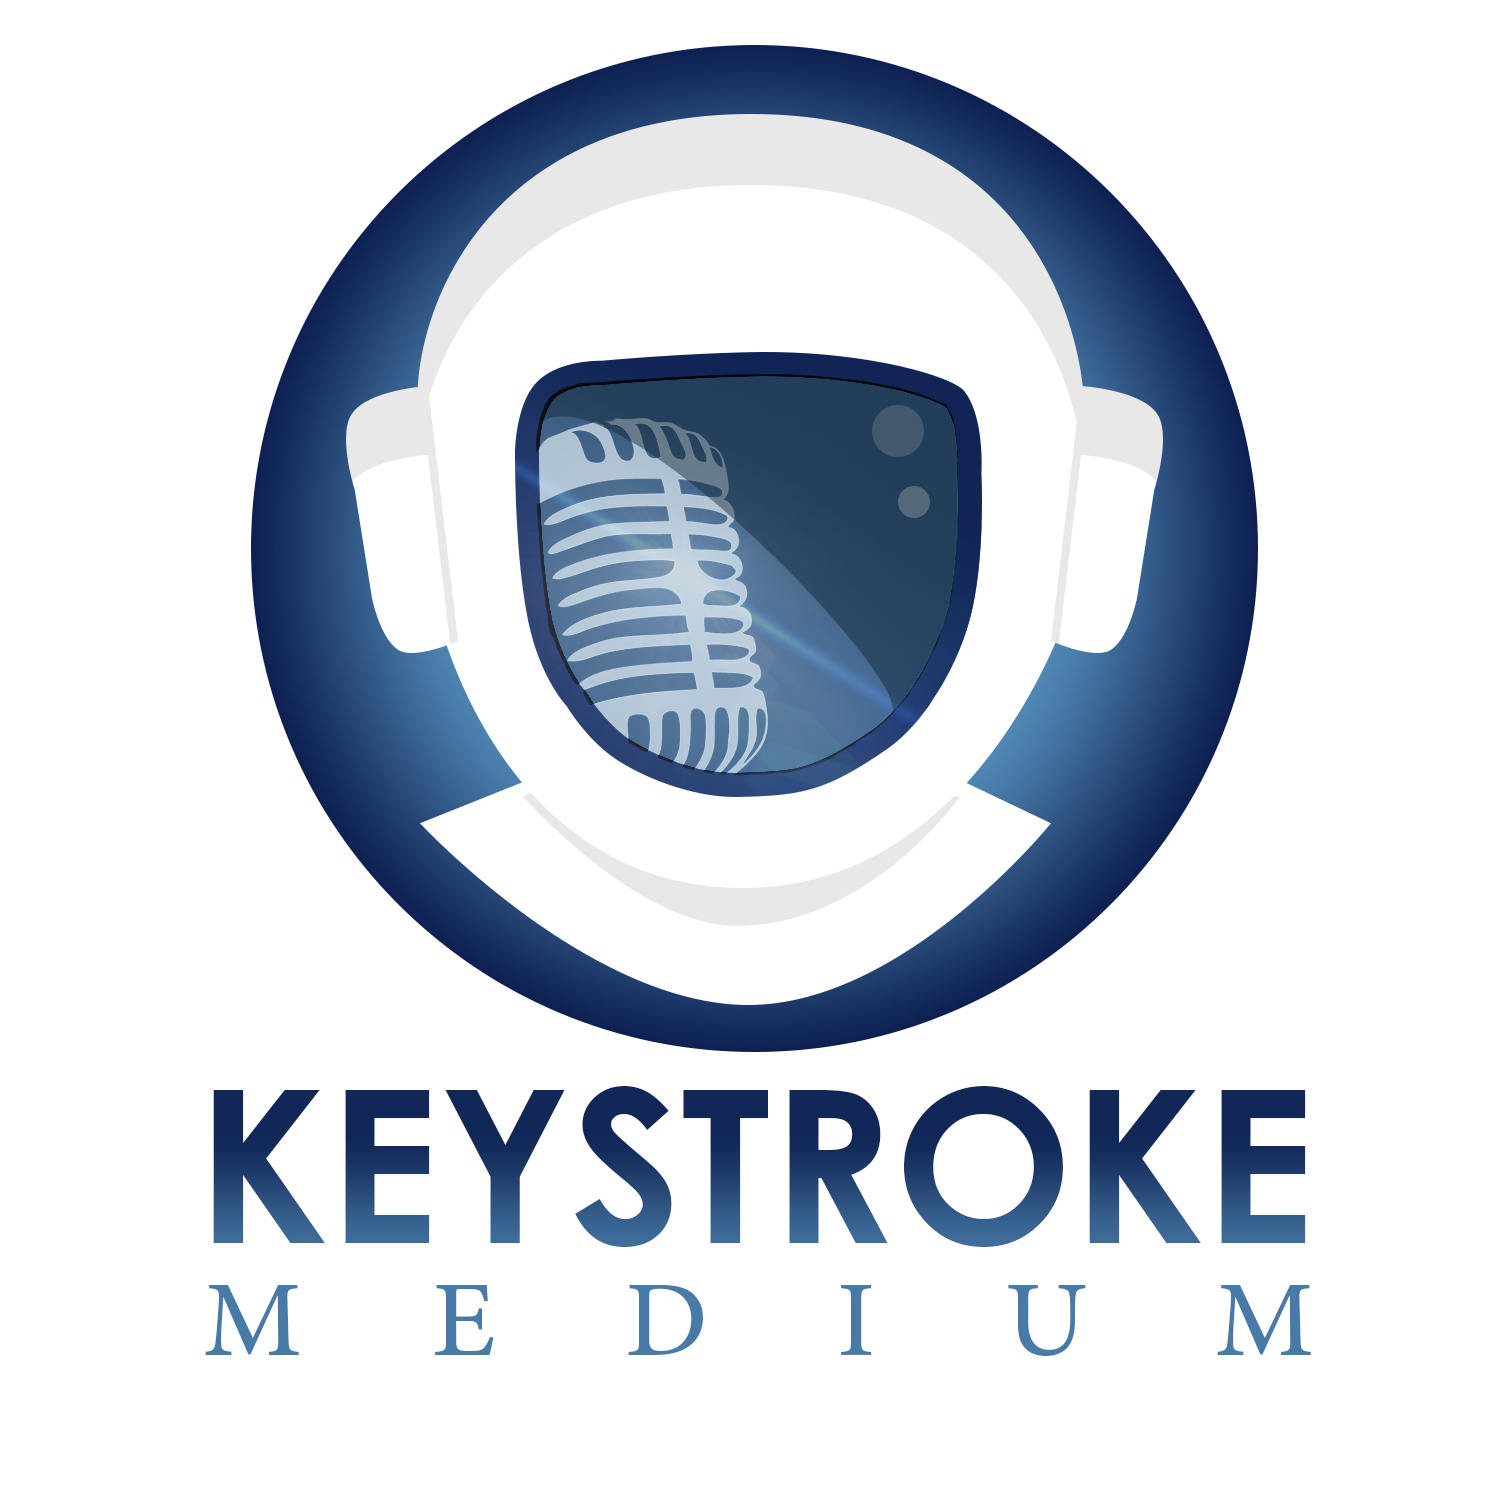 Keystroke Medium